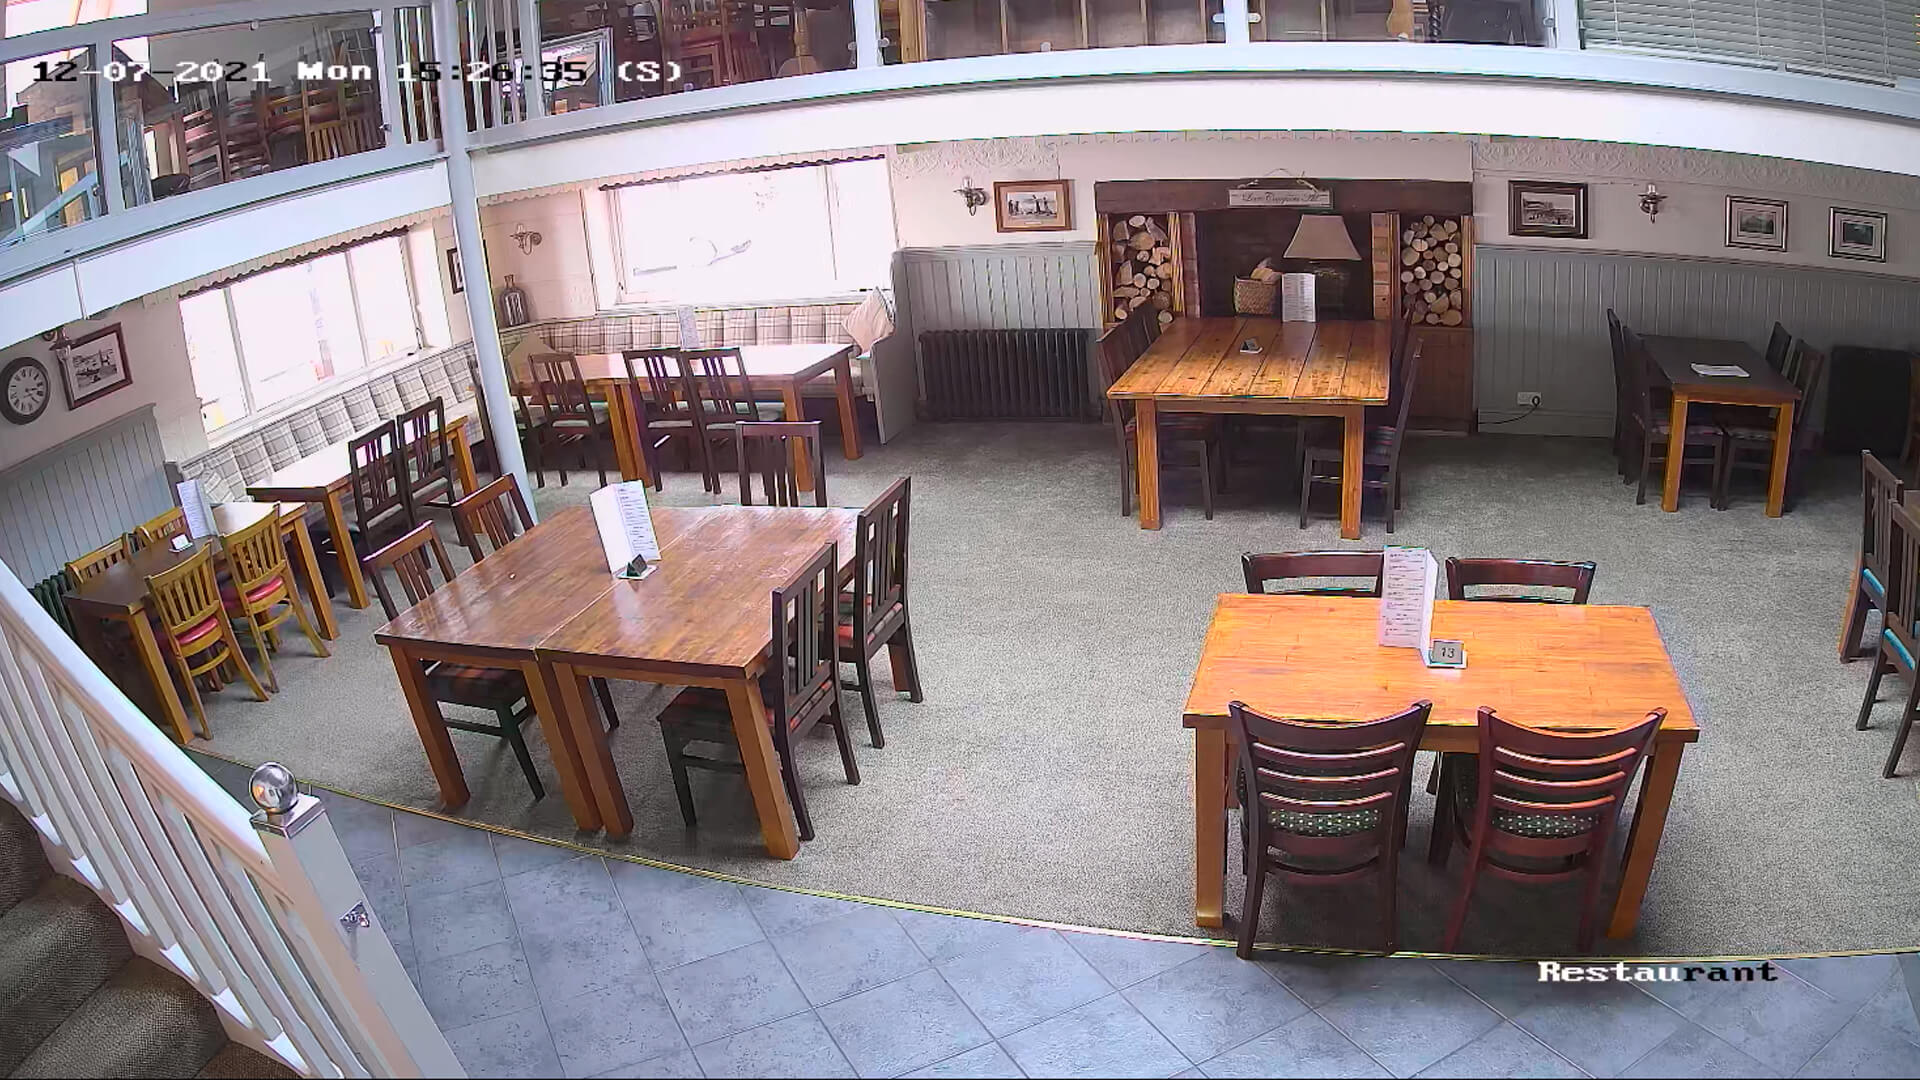 The Benefits of CCTV in Hotels